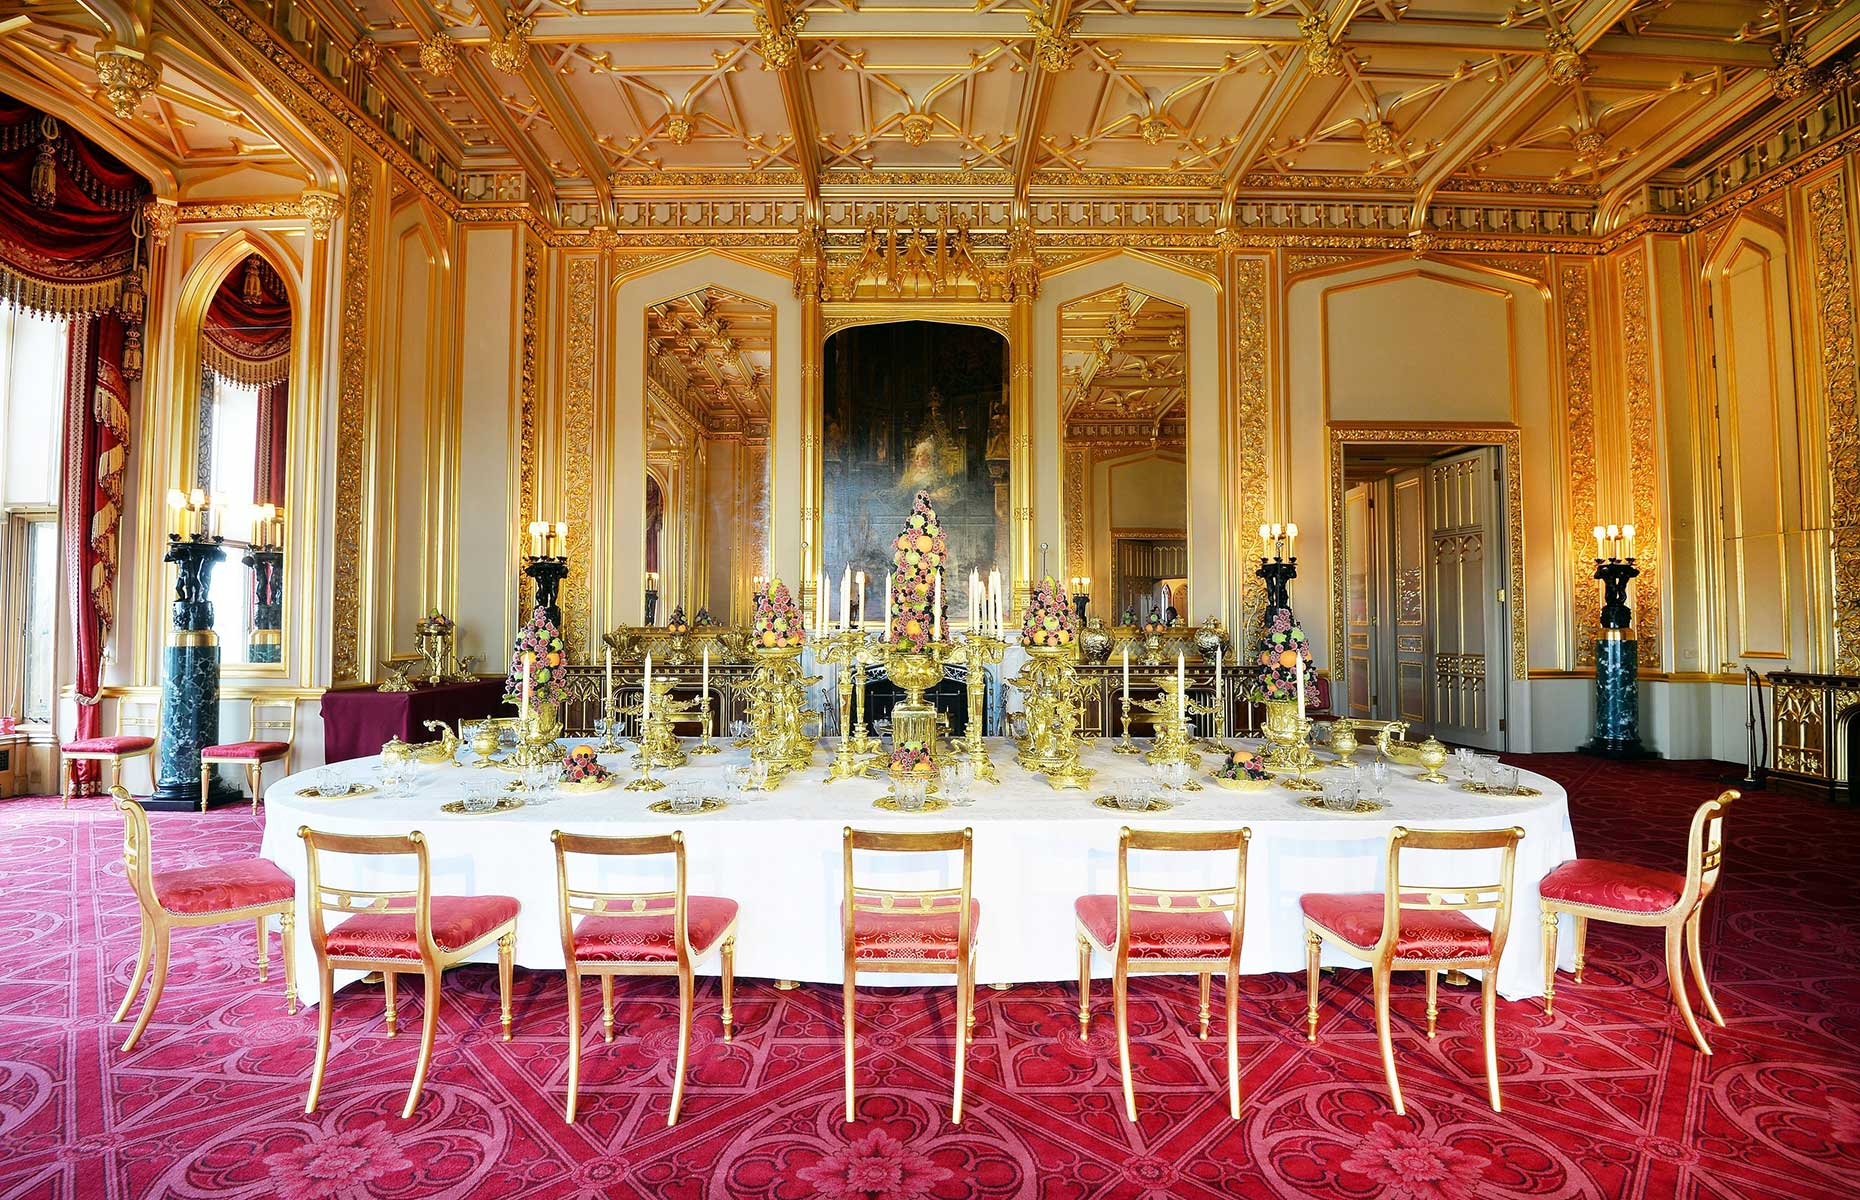 State apartments at Windsor Castle